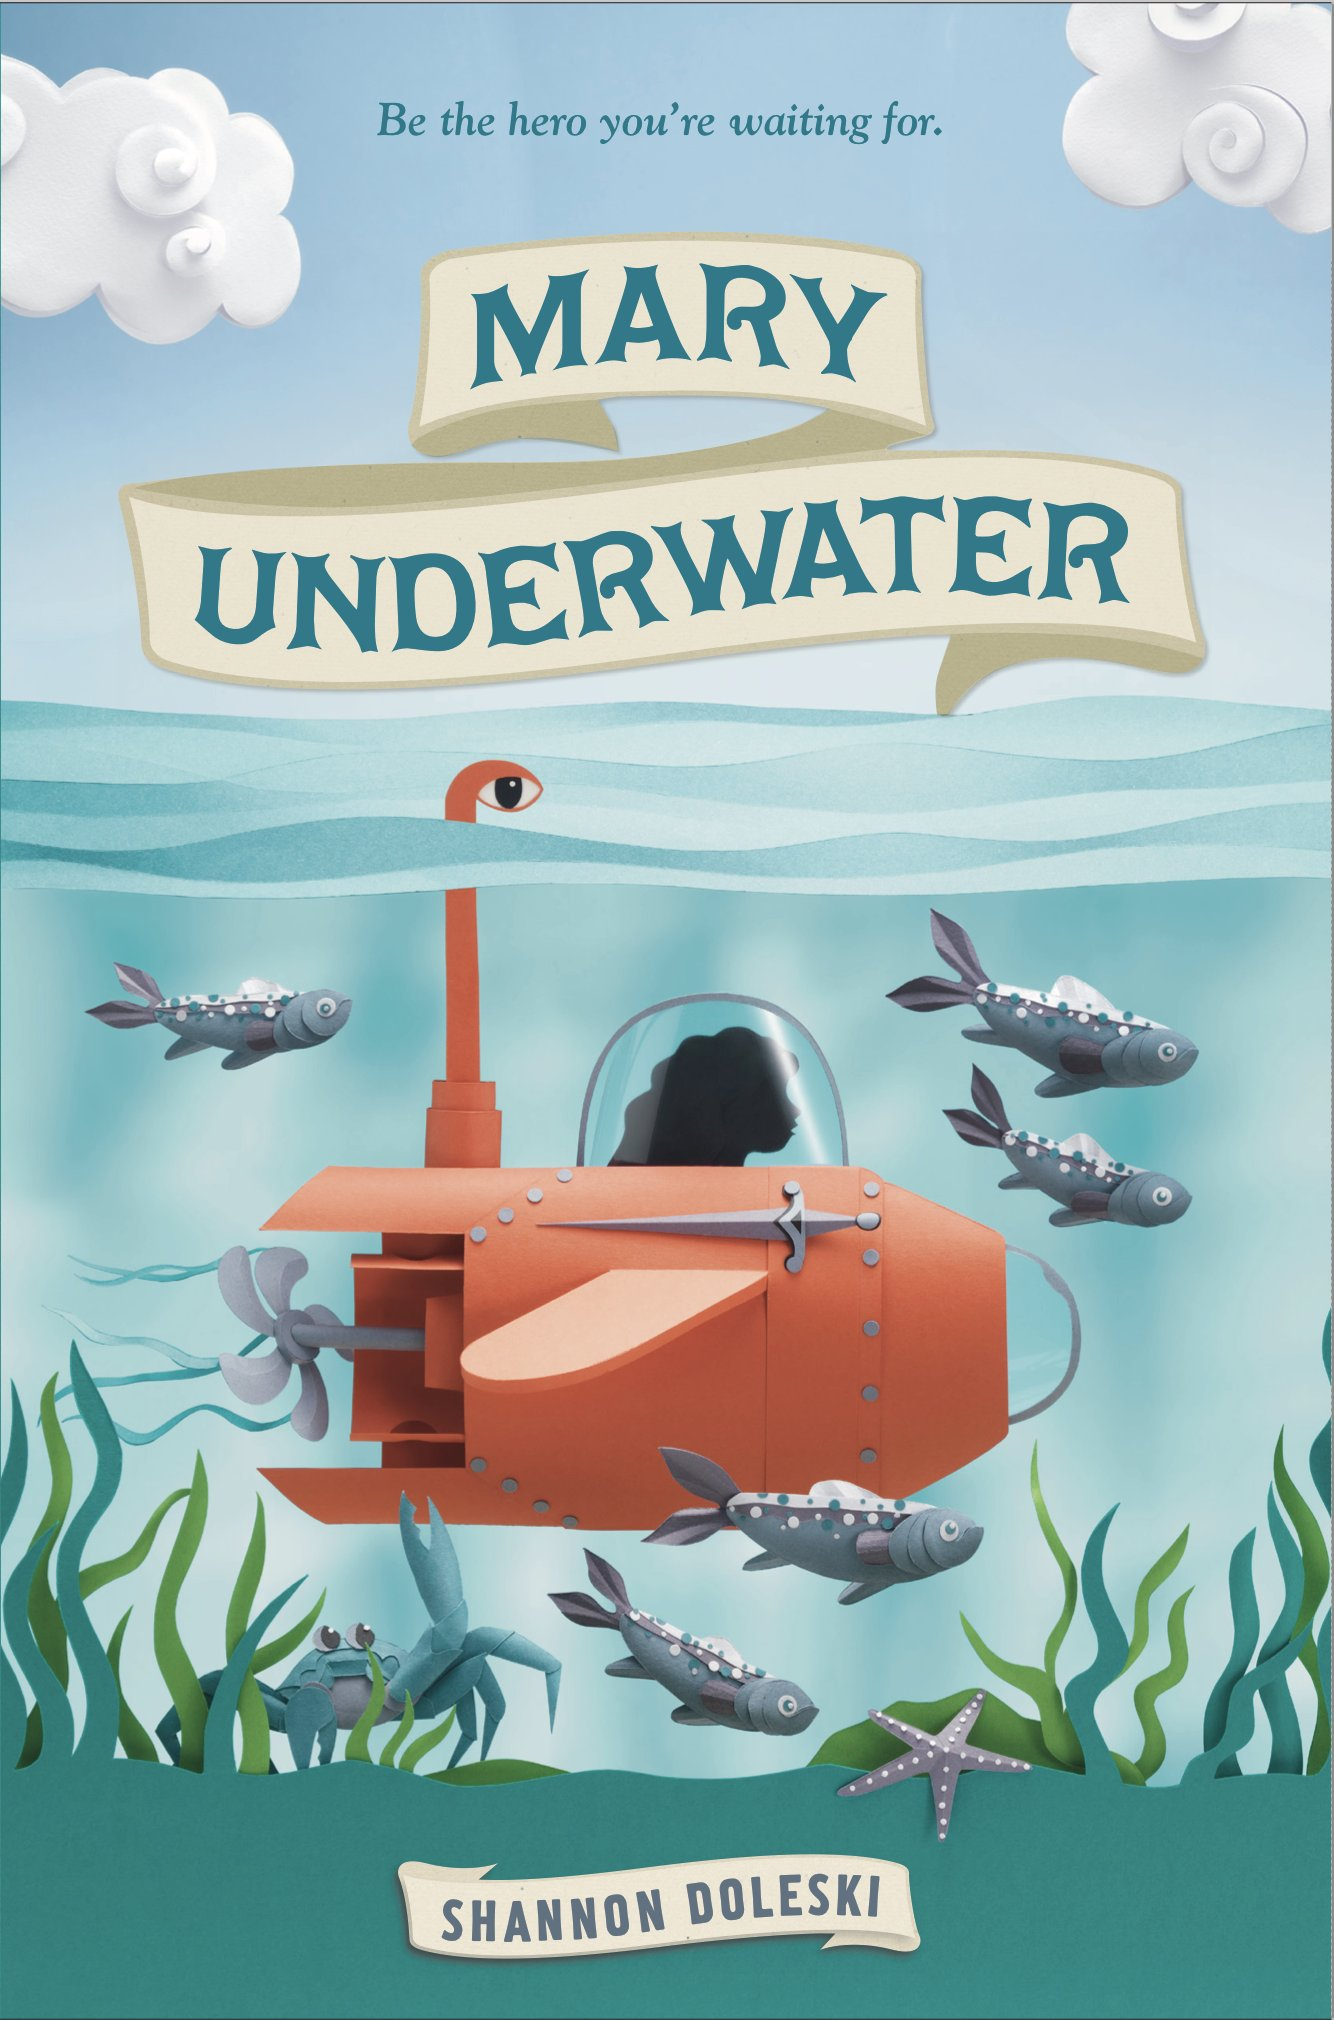 Mary Underwater by Shannon Doleski